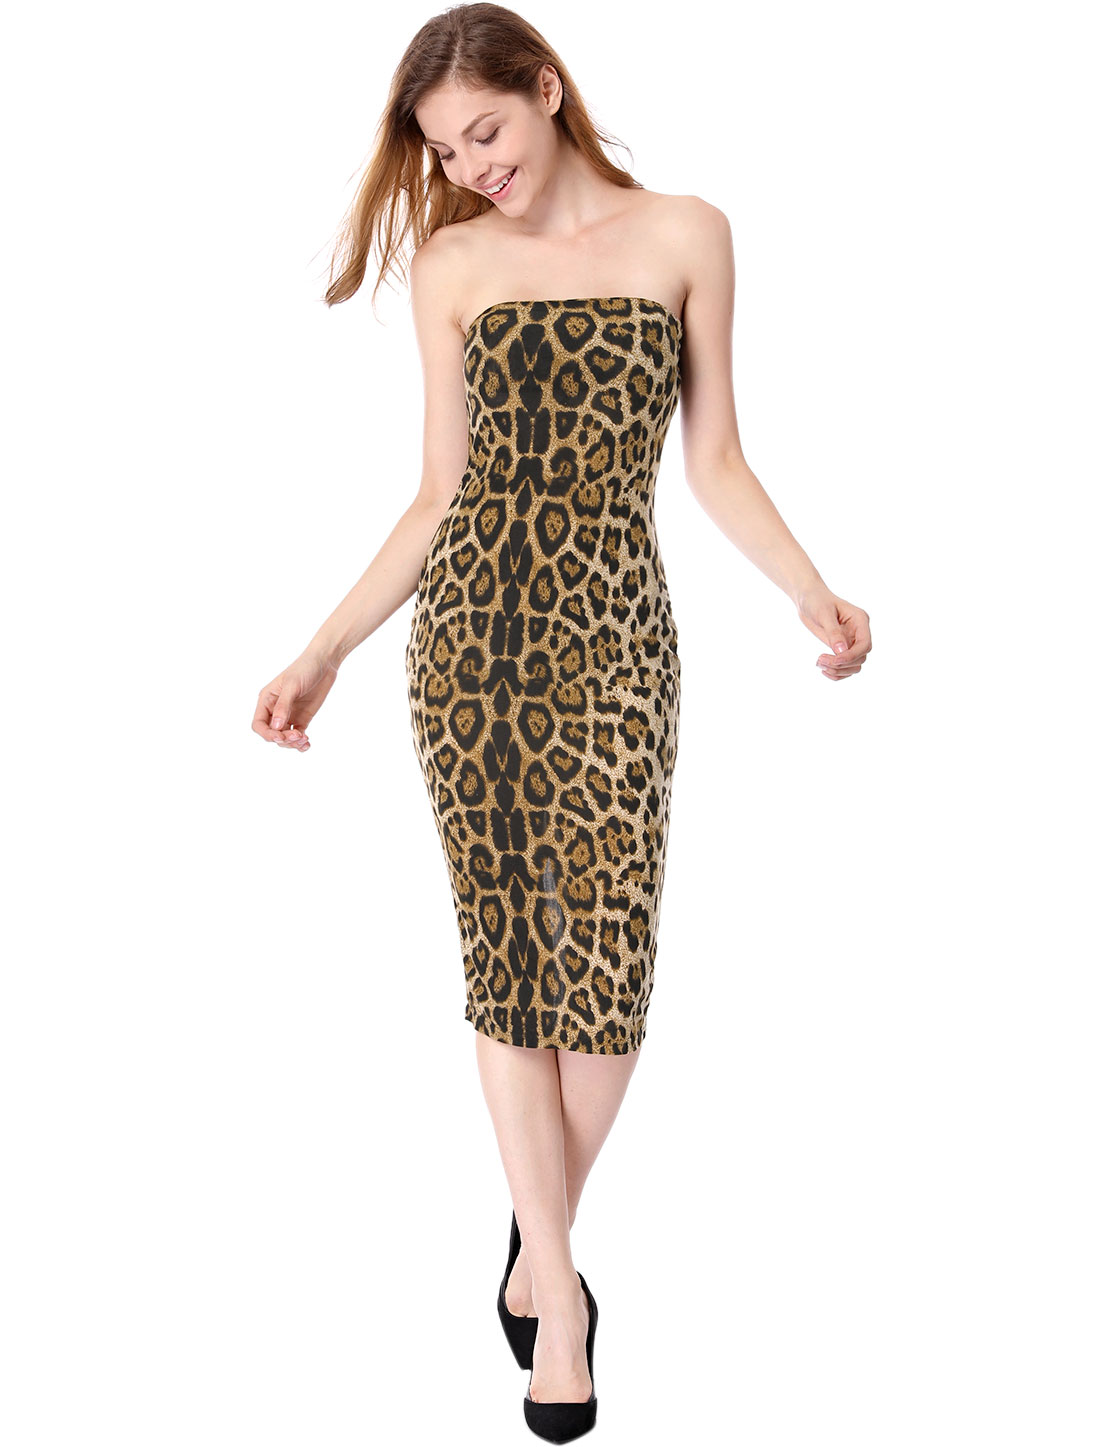 Pullover Coffee Color Leopard Printed Slim Fit Tube Dress M for Lady